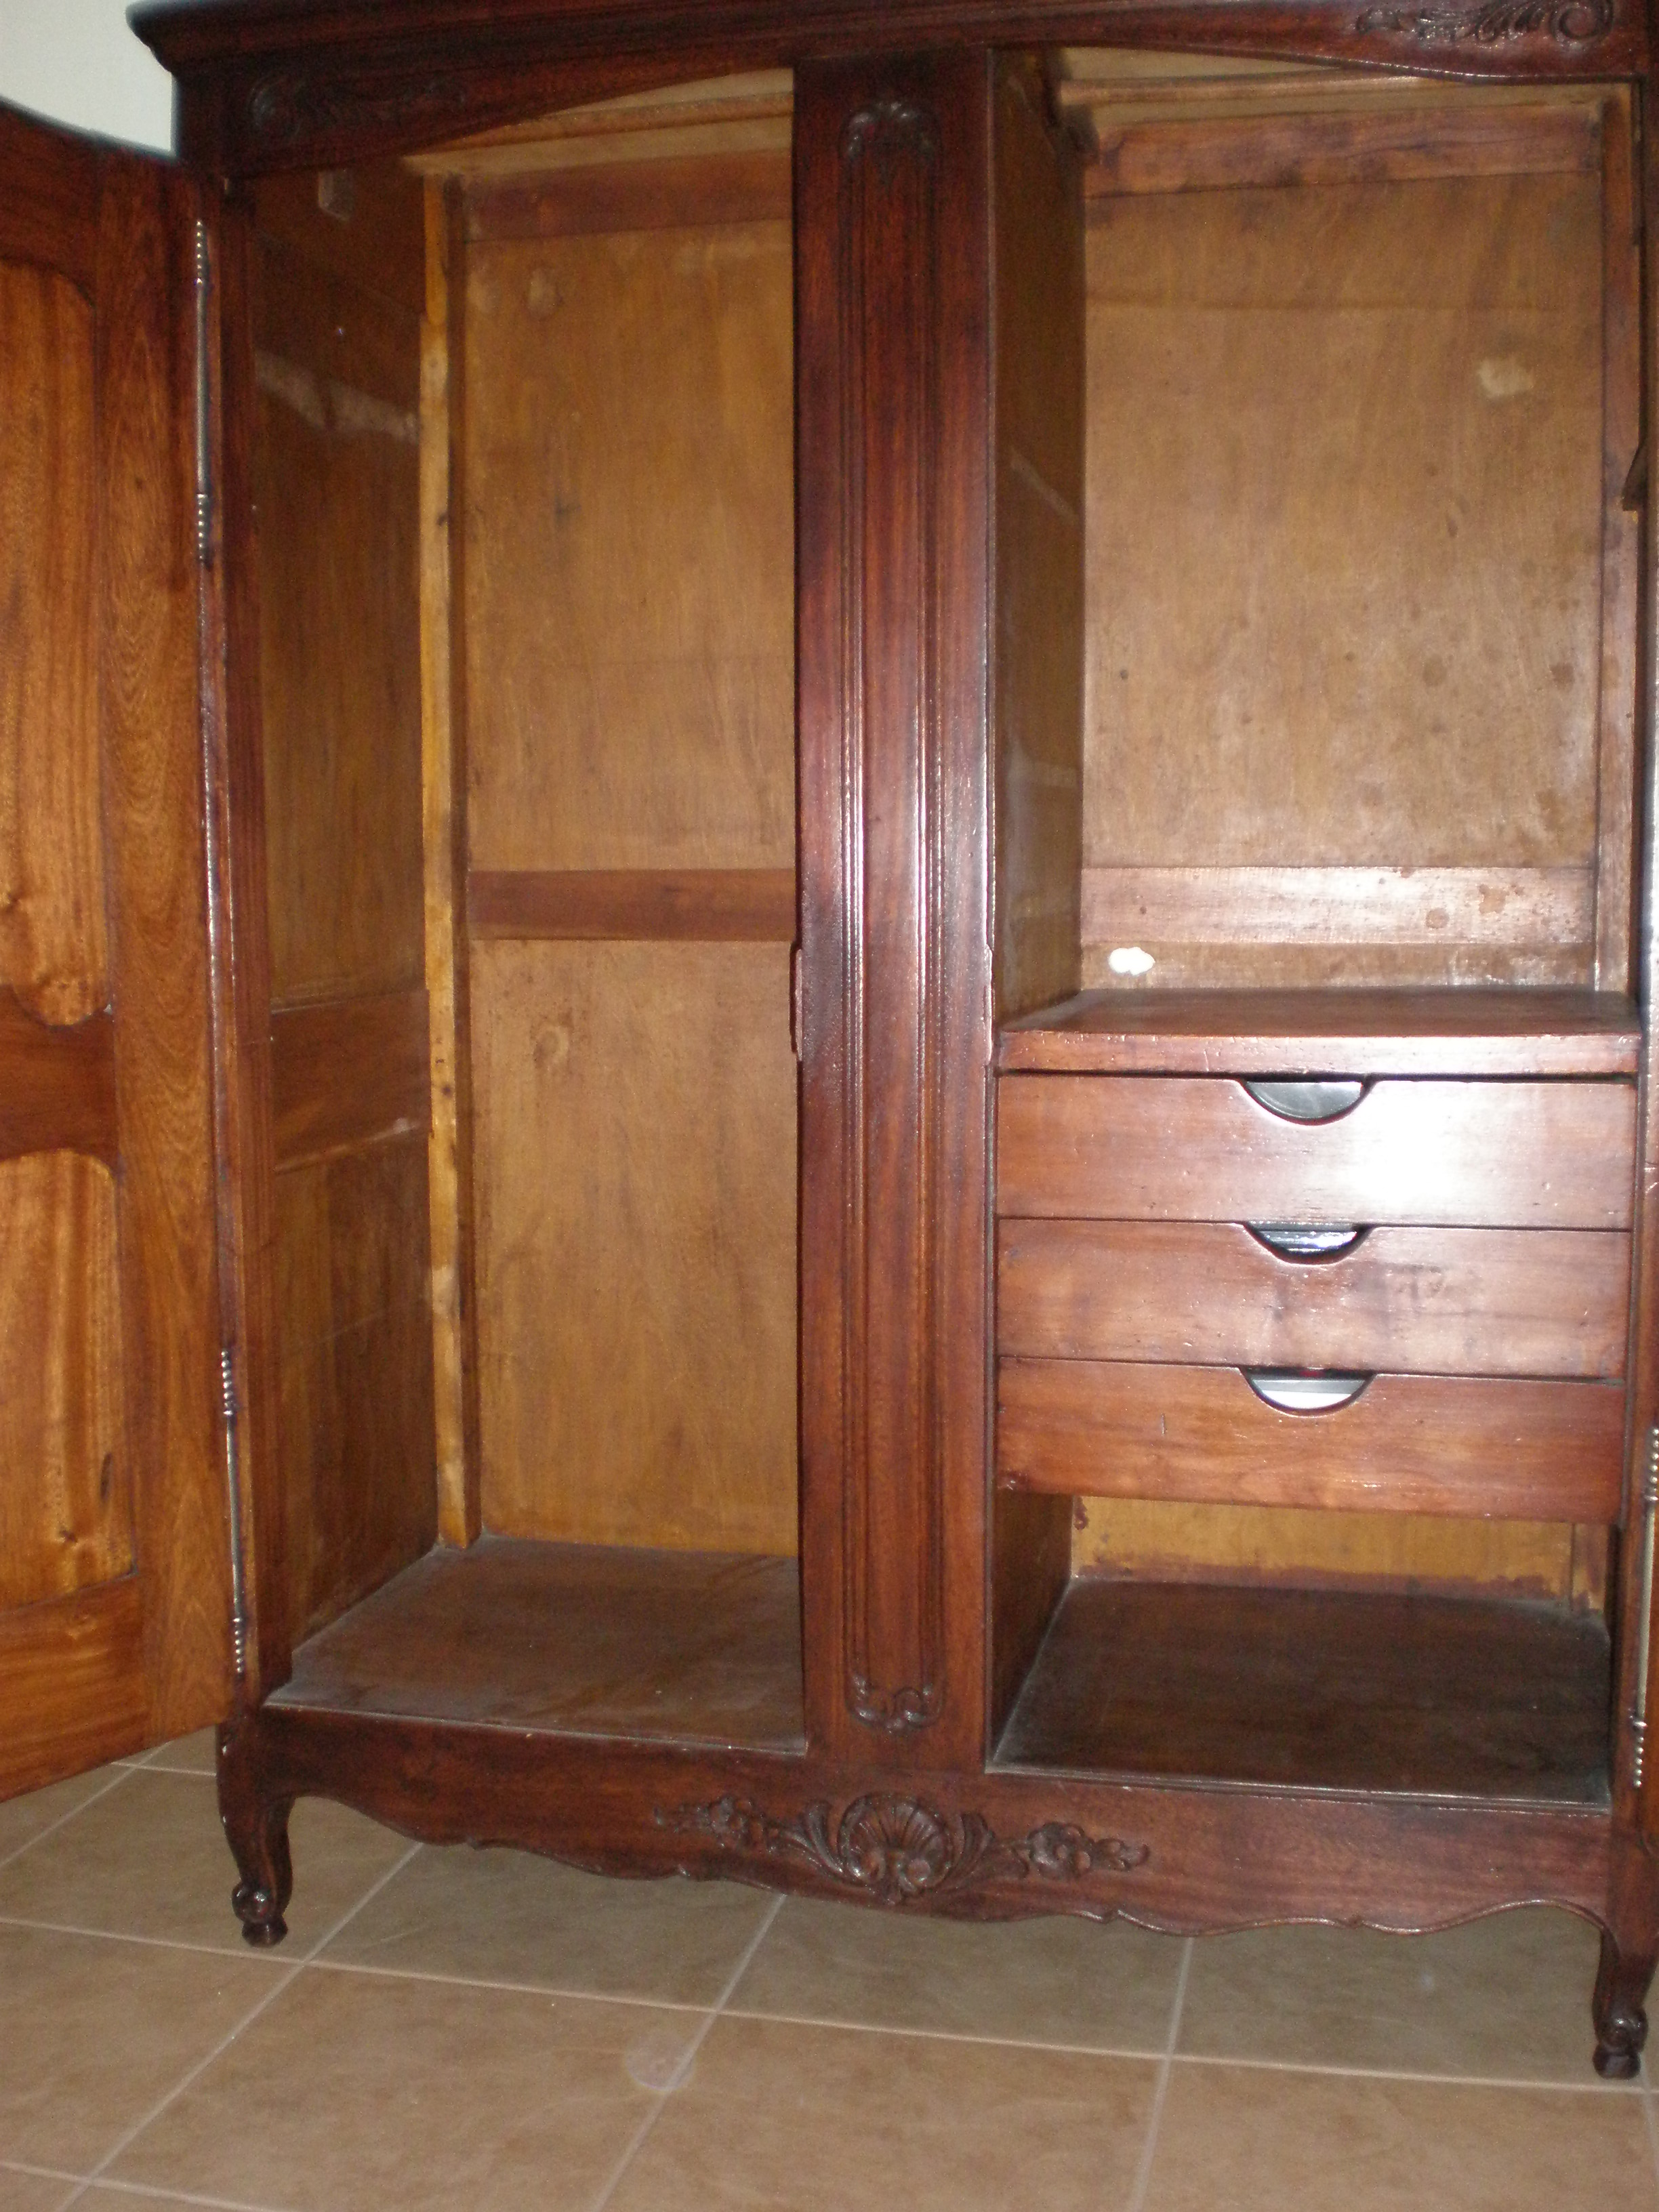 Beautiful Antique Armoire Looking For A New Home For Sale Classifieds